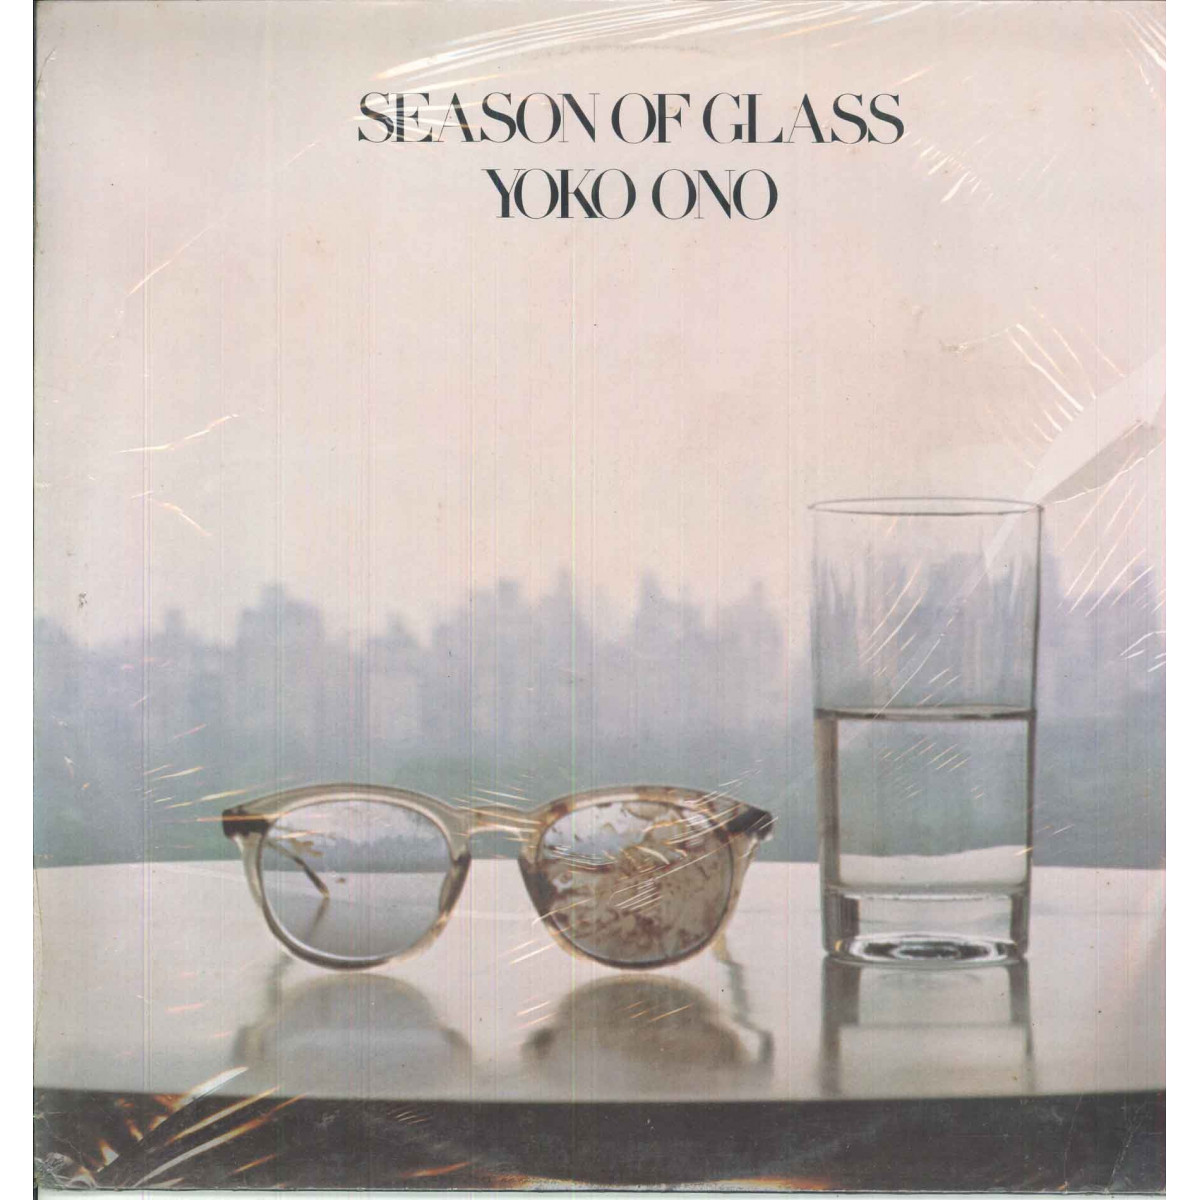 Yoko Ono Lp Vinile Season Of Glass / Geffen Records ‎GEF 99 164 Sigillato